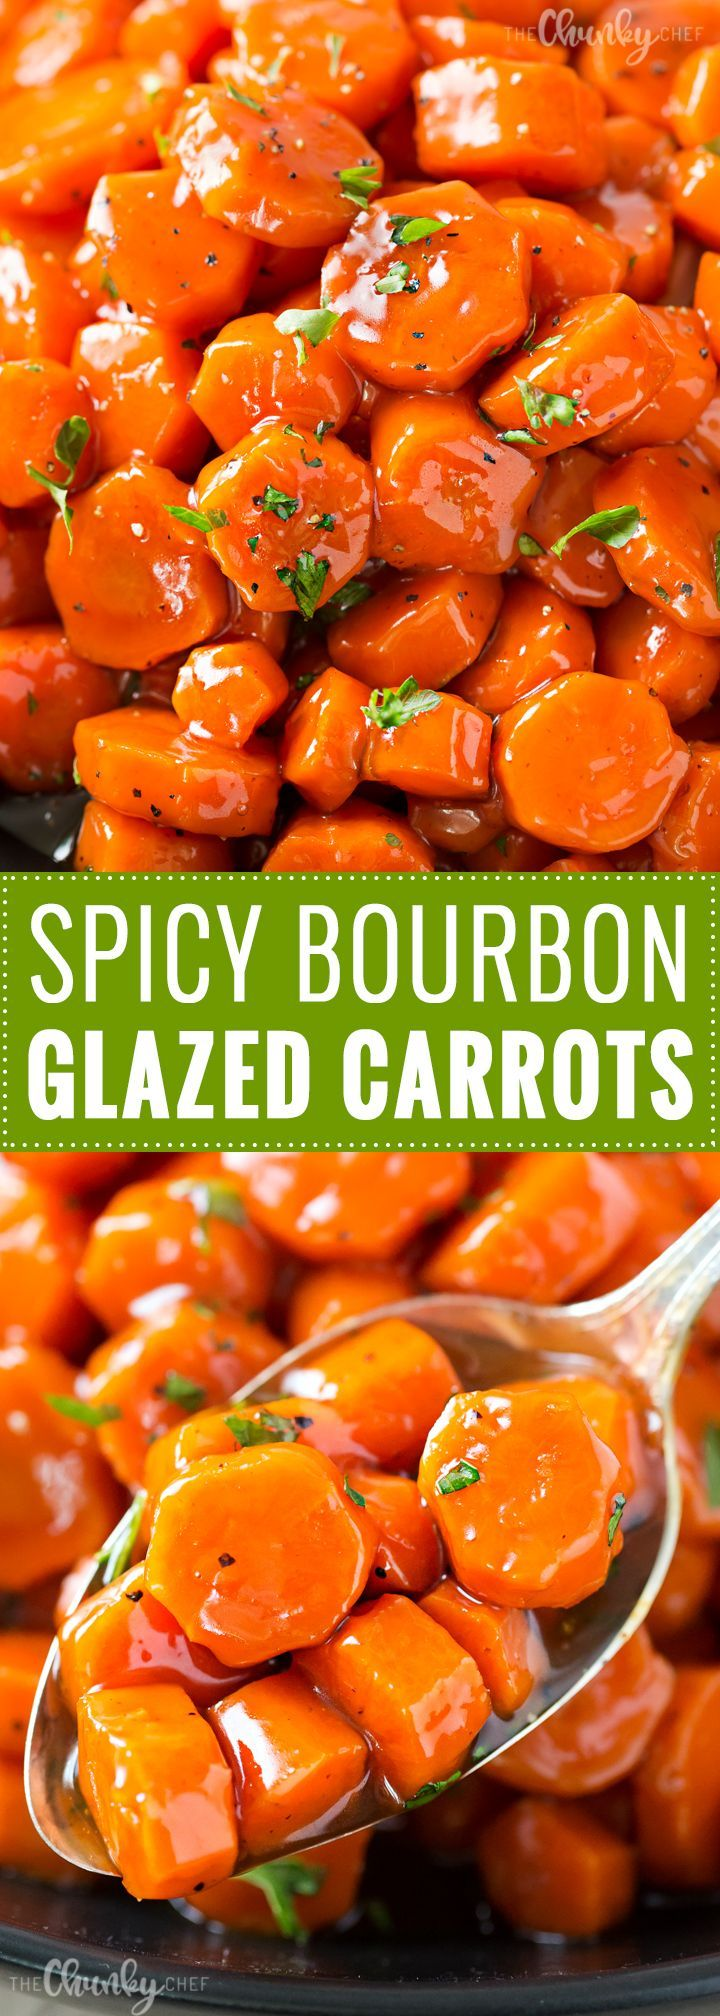 ... glazed carrots on Pinterest | Brown sugar carrots, Recipe for glazed